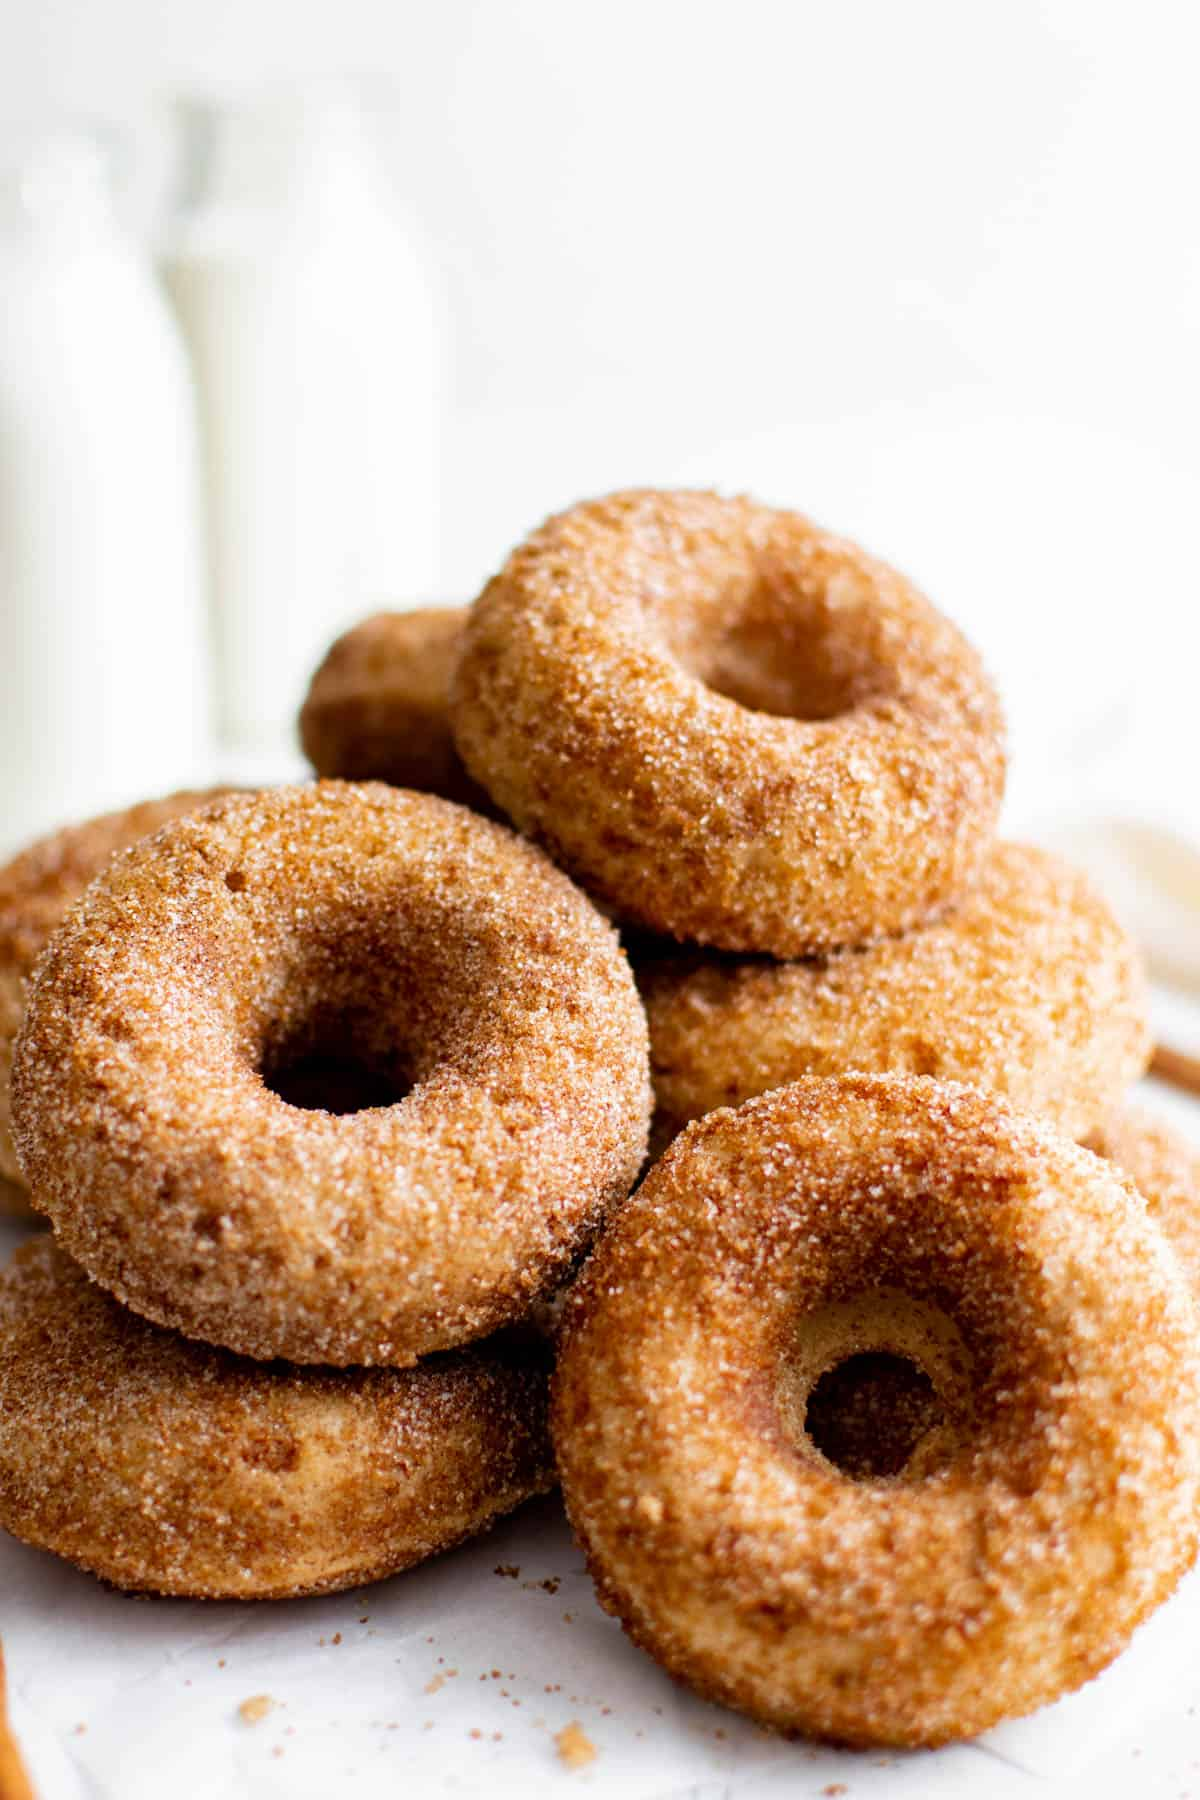 a pile of apple cider donuts next to a glass milk jug